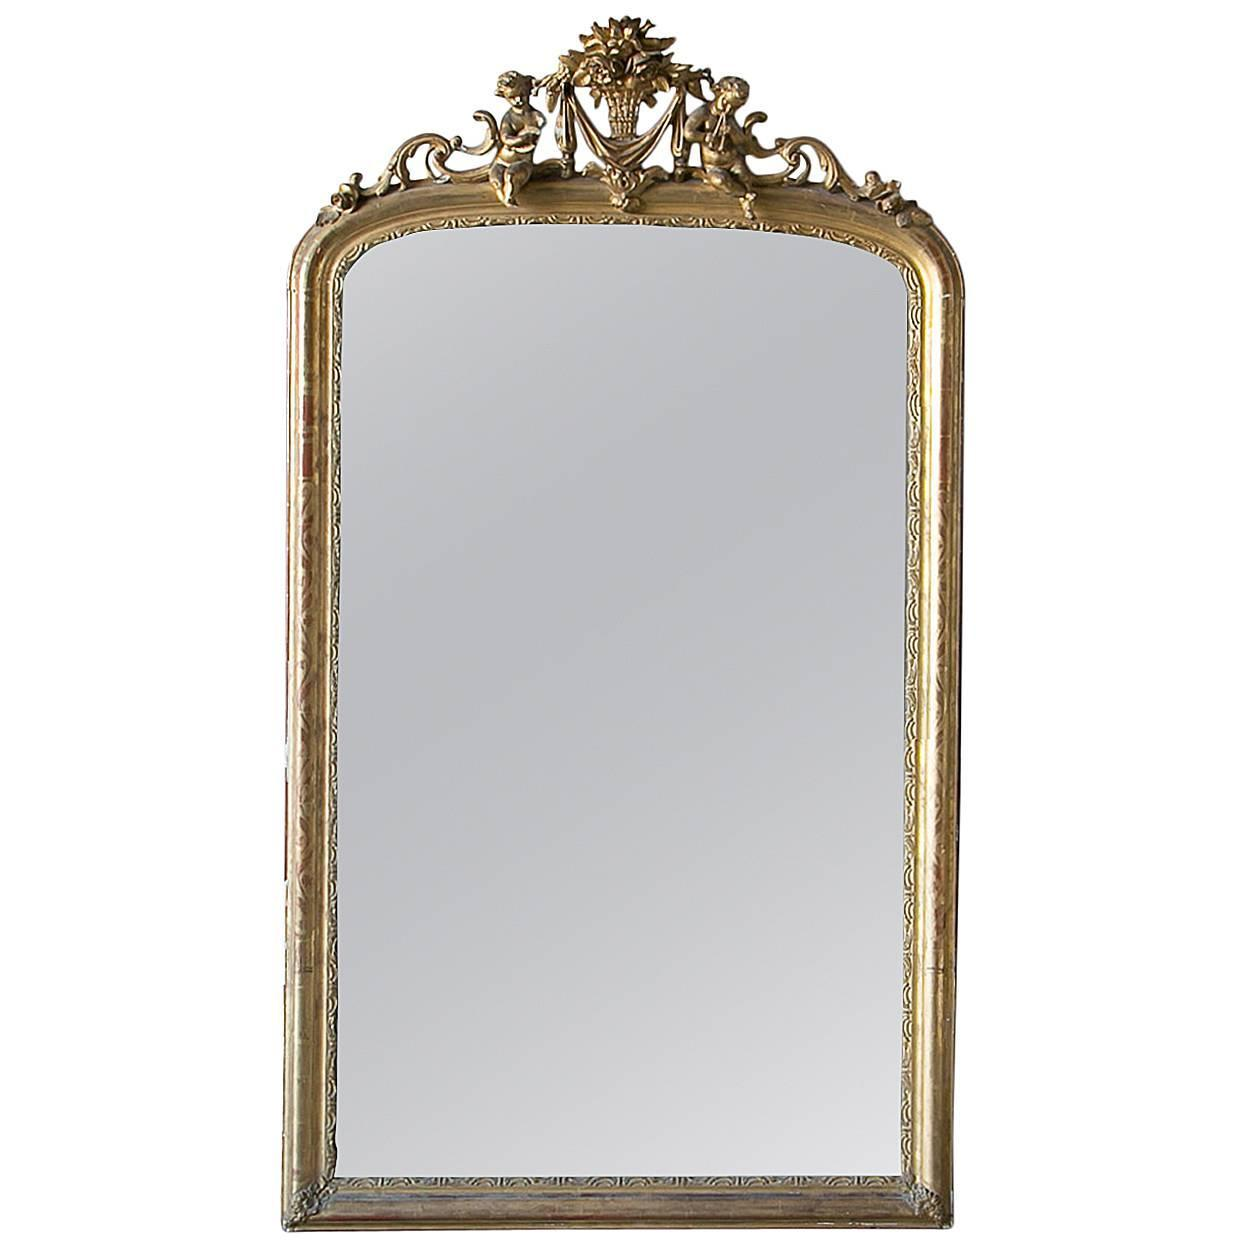 Antique louis xv french gilt mirror circa 1860 at 1stdibs for Vintage floor length mirror